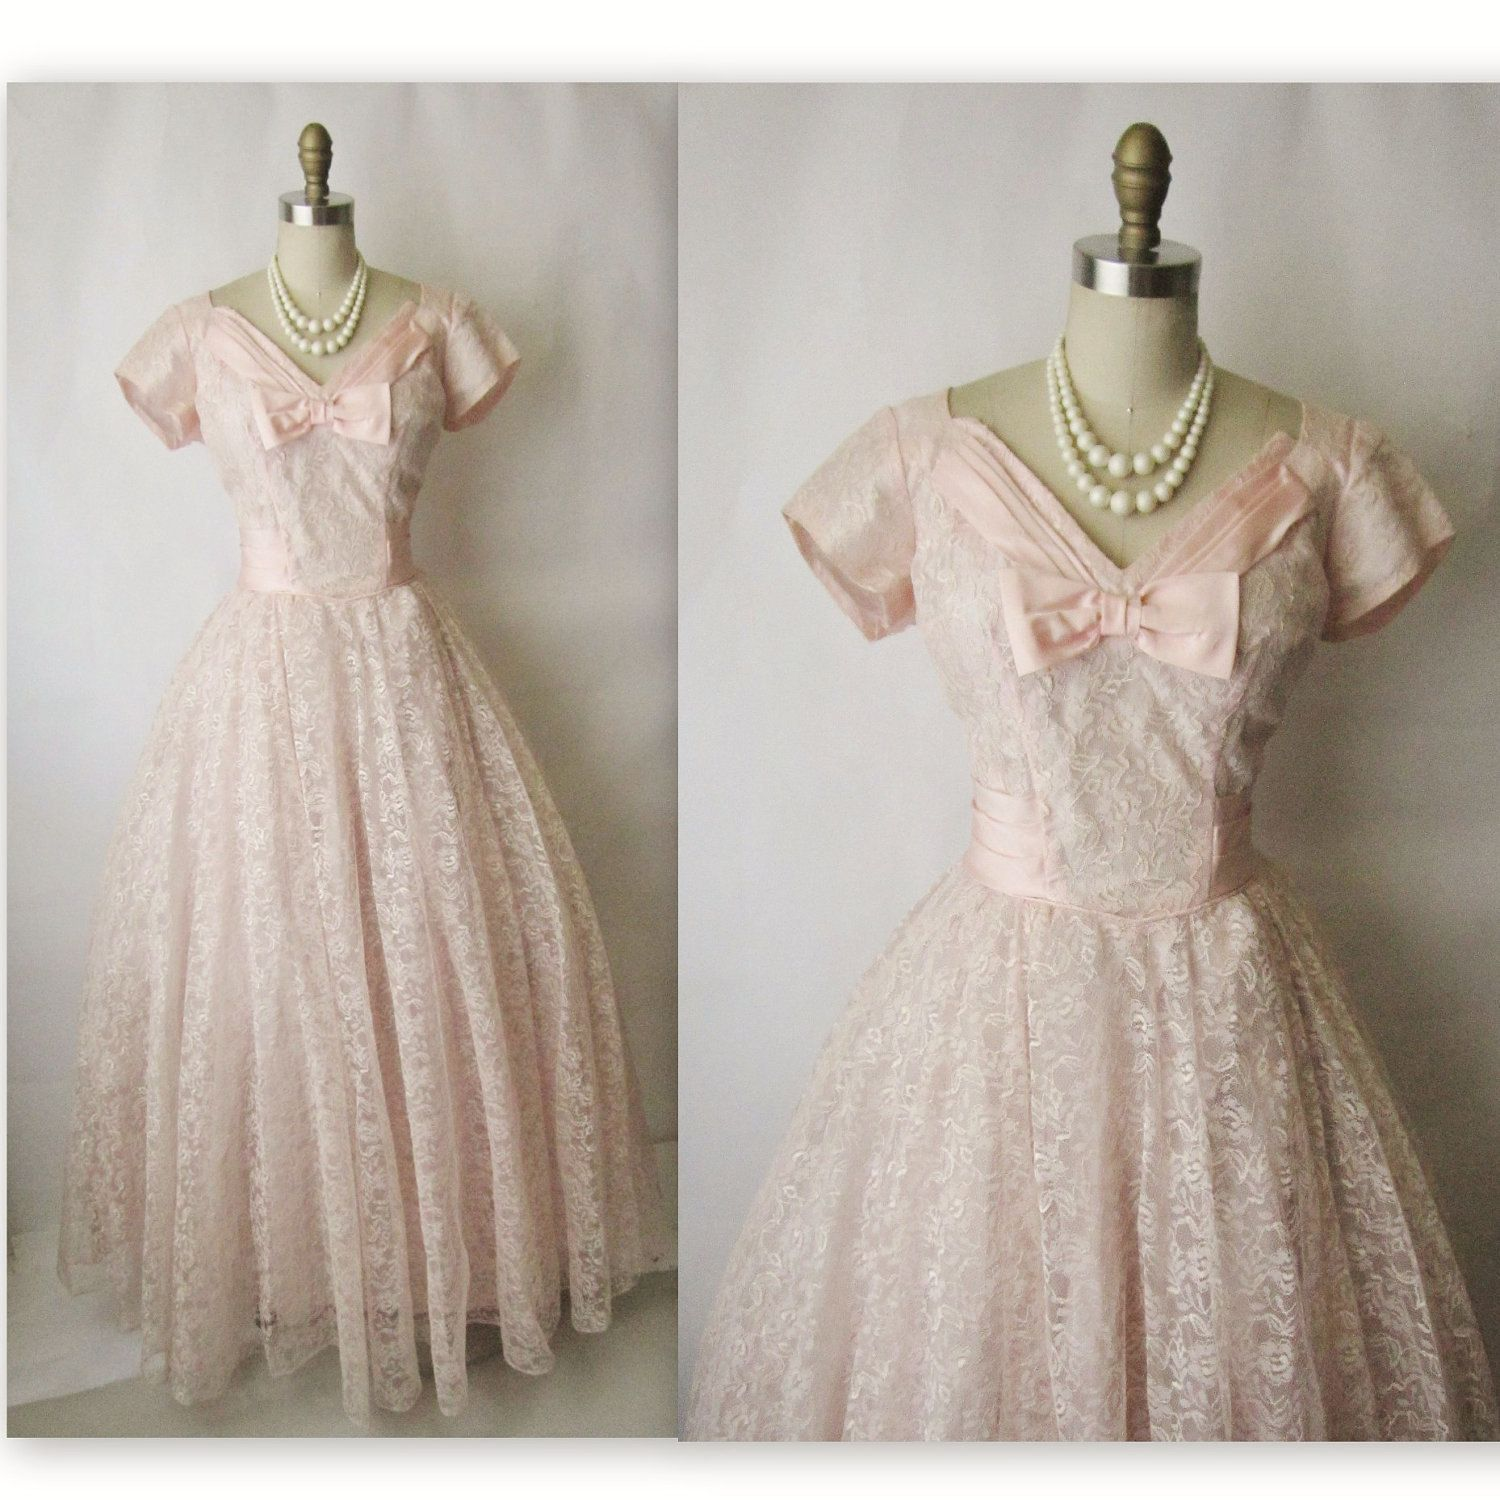 Wedding dresses fifties style  us Prom Dress  Vintage us Pink Lace Taffeta Wedding Party